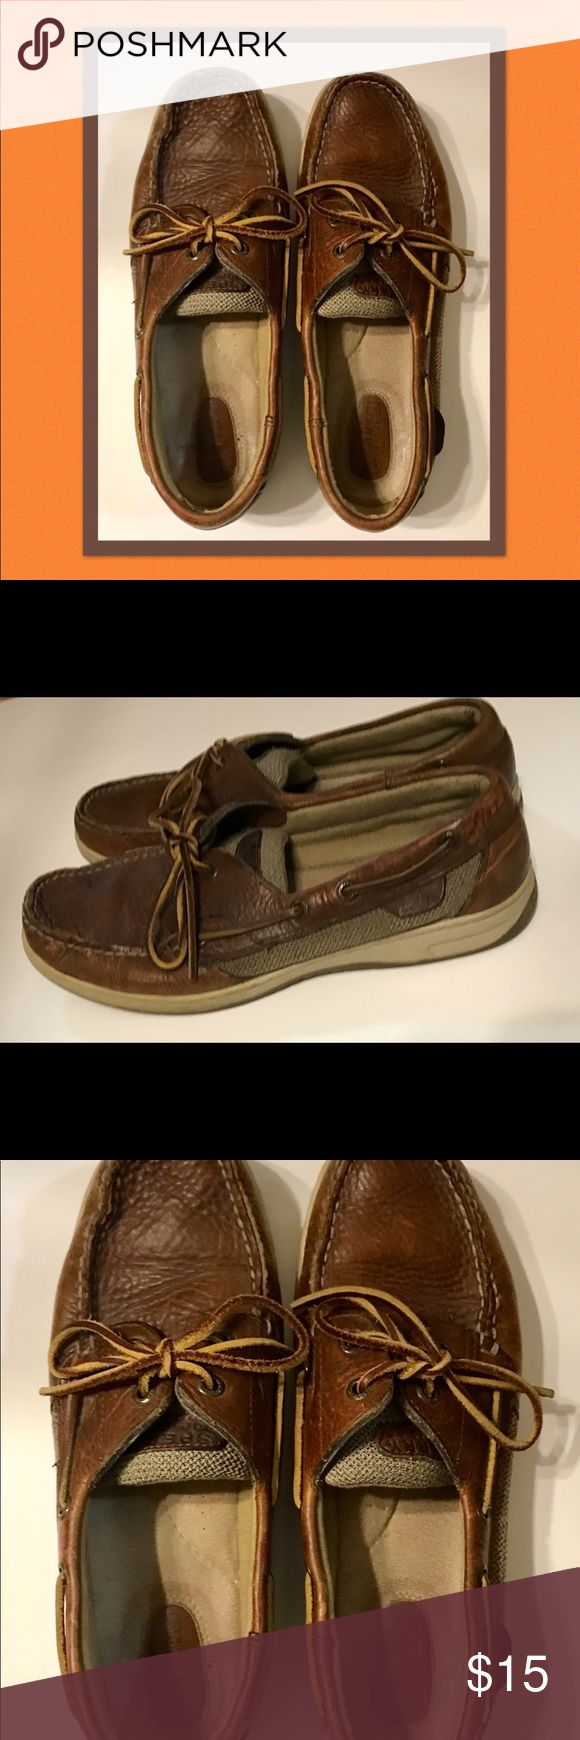 MENS SPERRY TOP SIDERS GUEC Sperry Top-Sider Shoes Boat Shoes